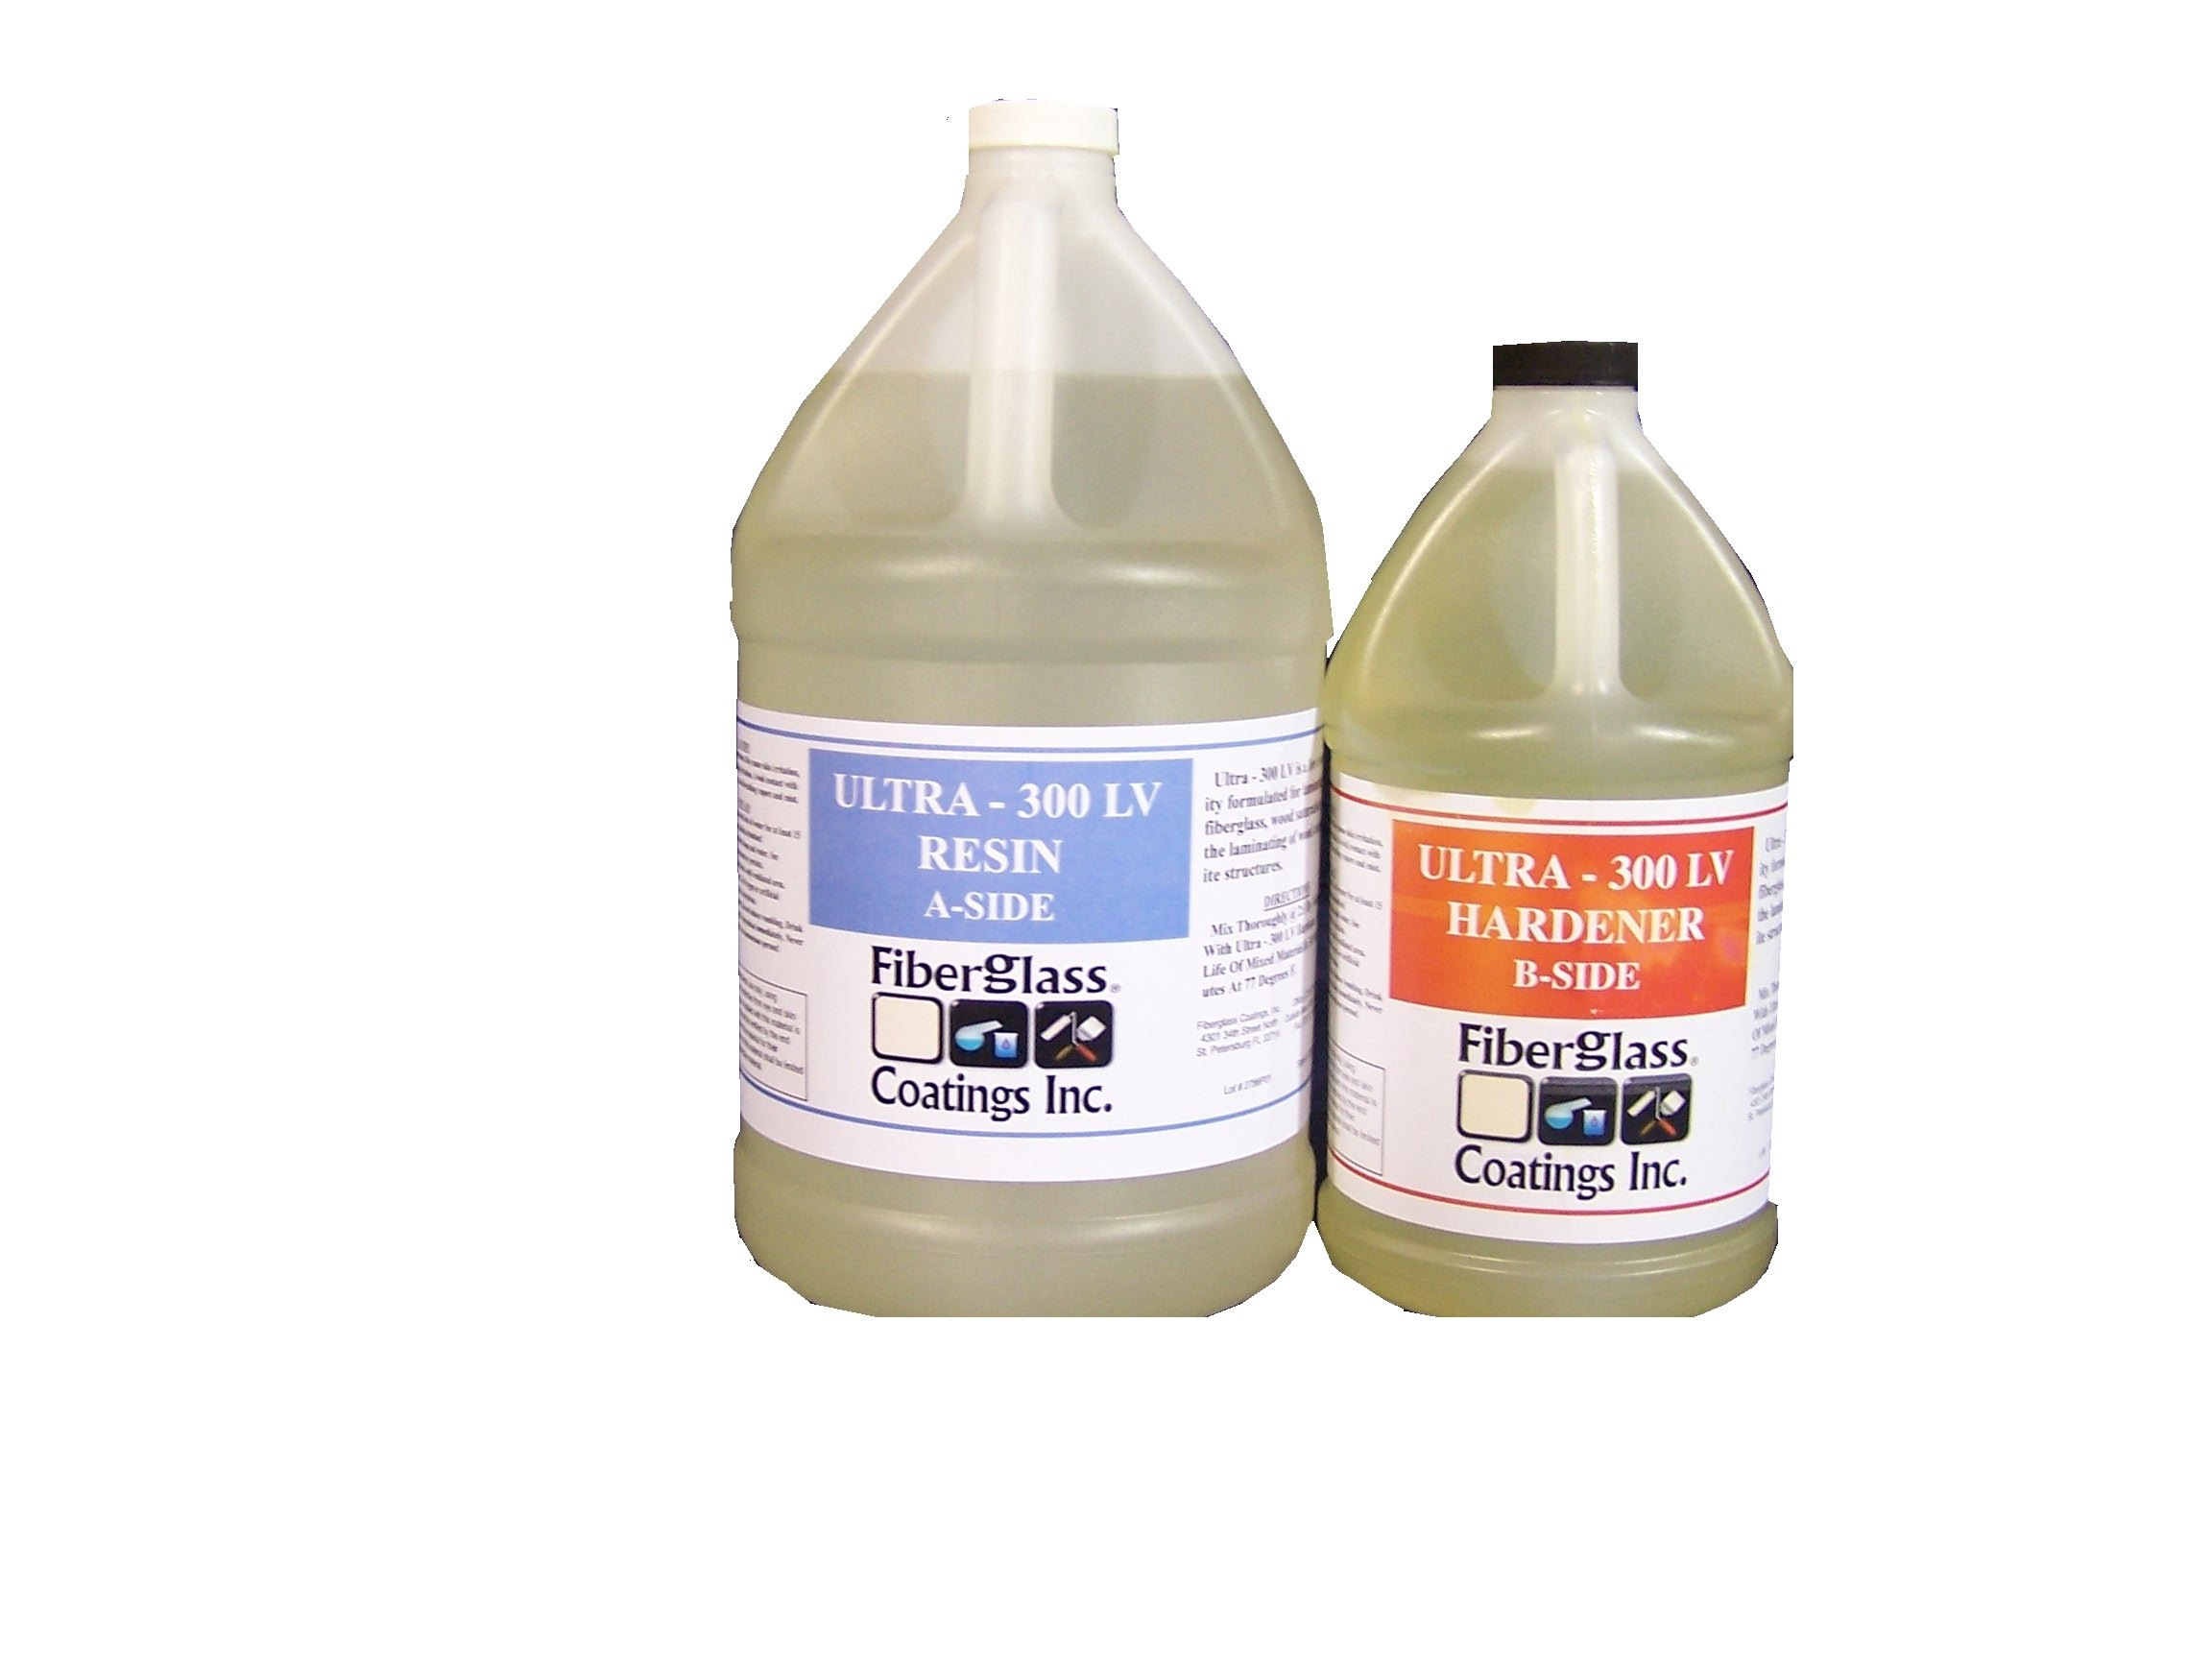 Epoxy Laminating Resin Kit, 2:1, 1-1/2 Gallon, High Strength, Easy Wet-Out, Parts A & B Included